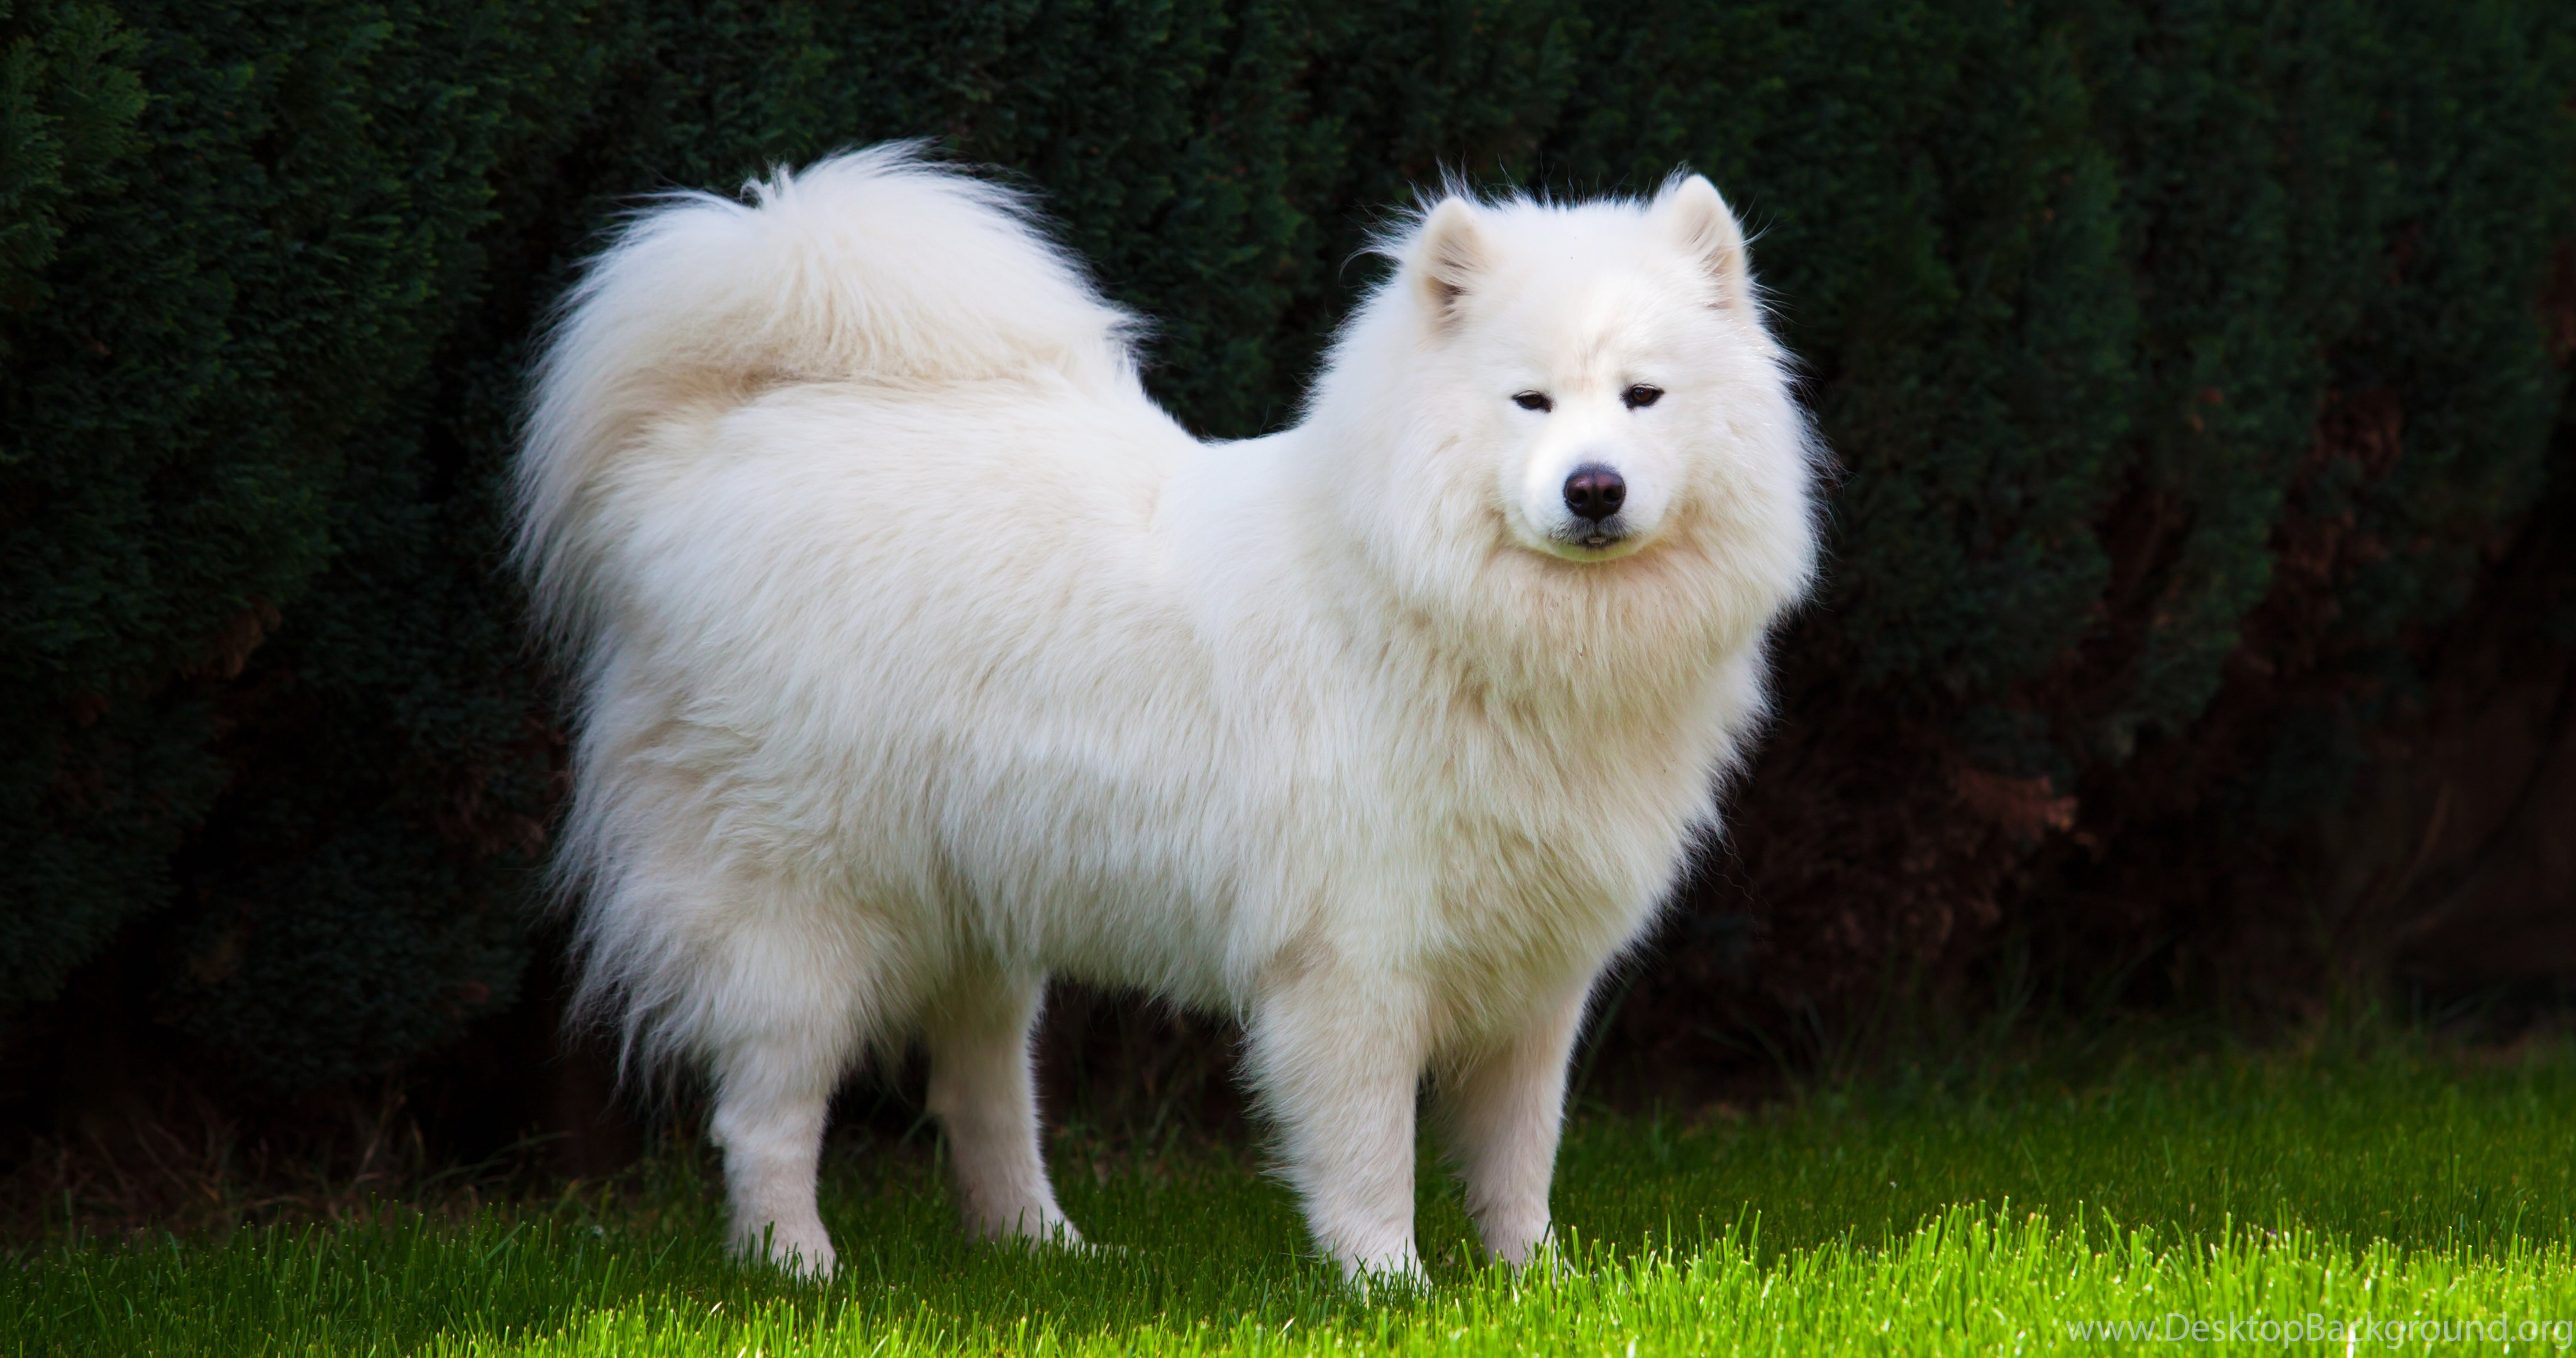 Iphone 7 Plus Wallpaper Size Samoyed Dog Dogs Canine Wallpapers Desktop Background